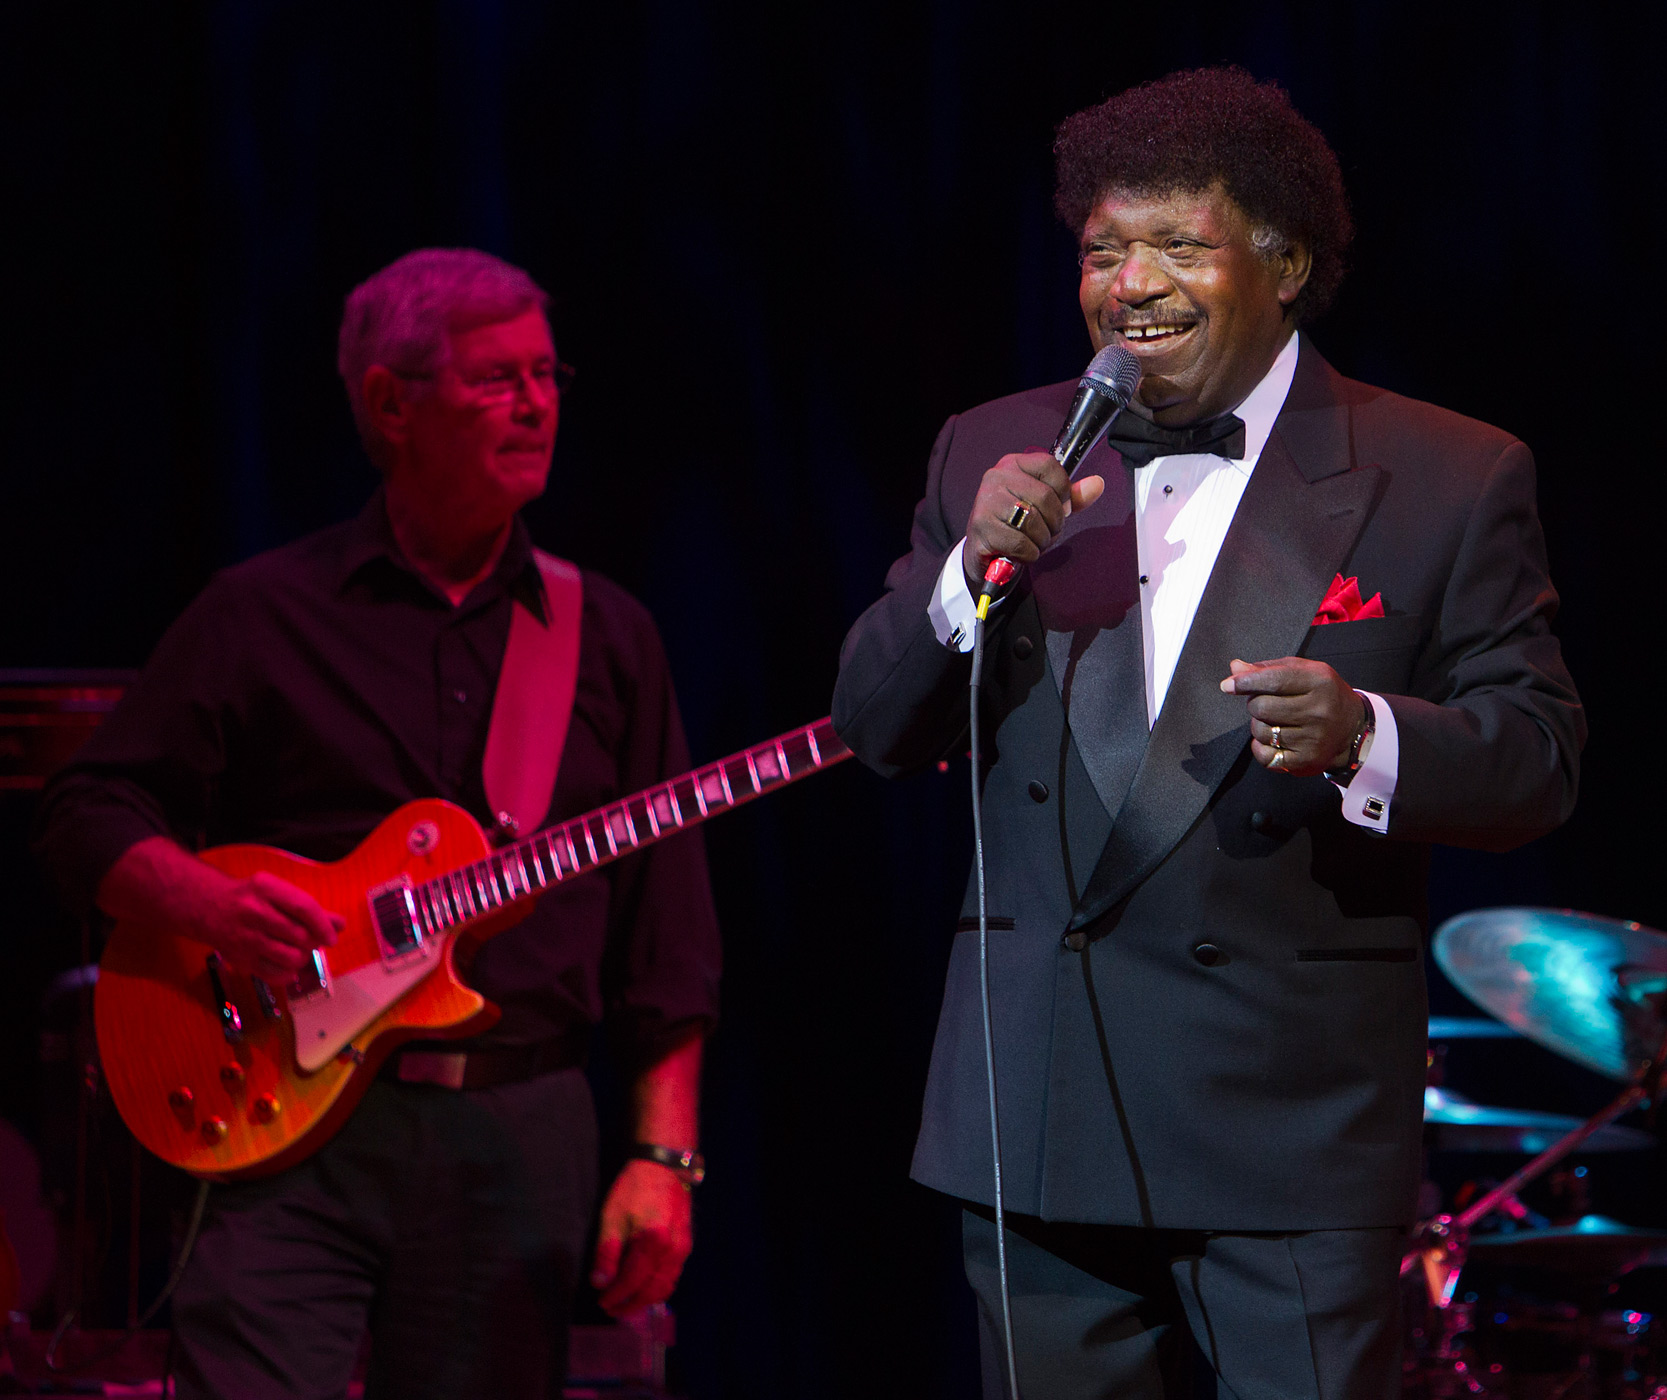 Percy Sledge performs during the 1st Annual Clay Walker Gala & Live Performance To Benefit MS at the House Of Blues on October 18, 2012 in Houston, TX.